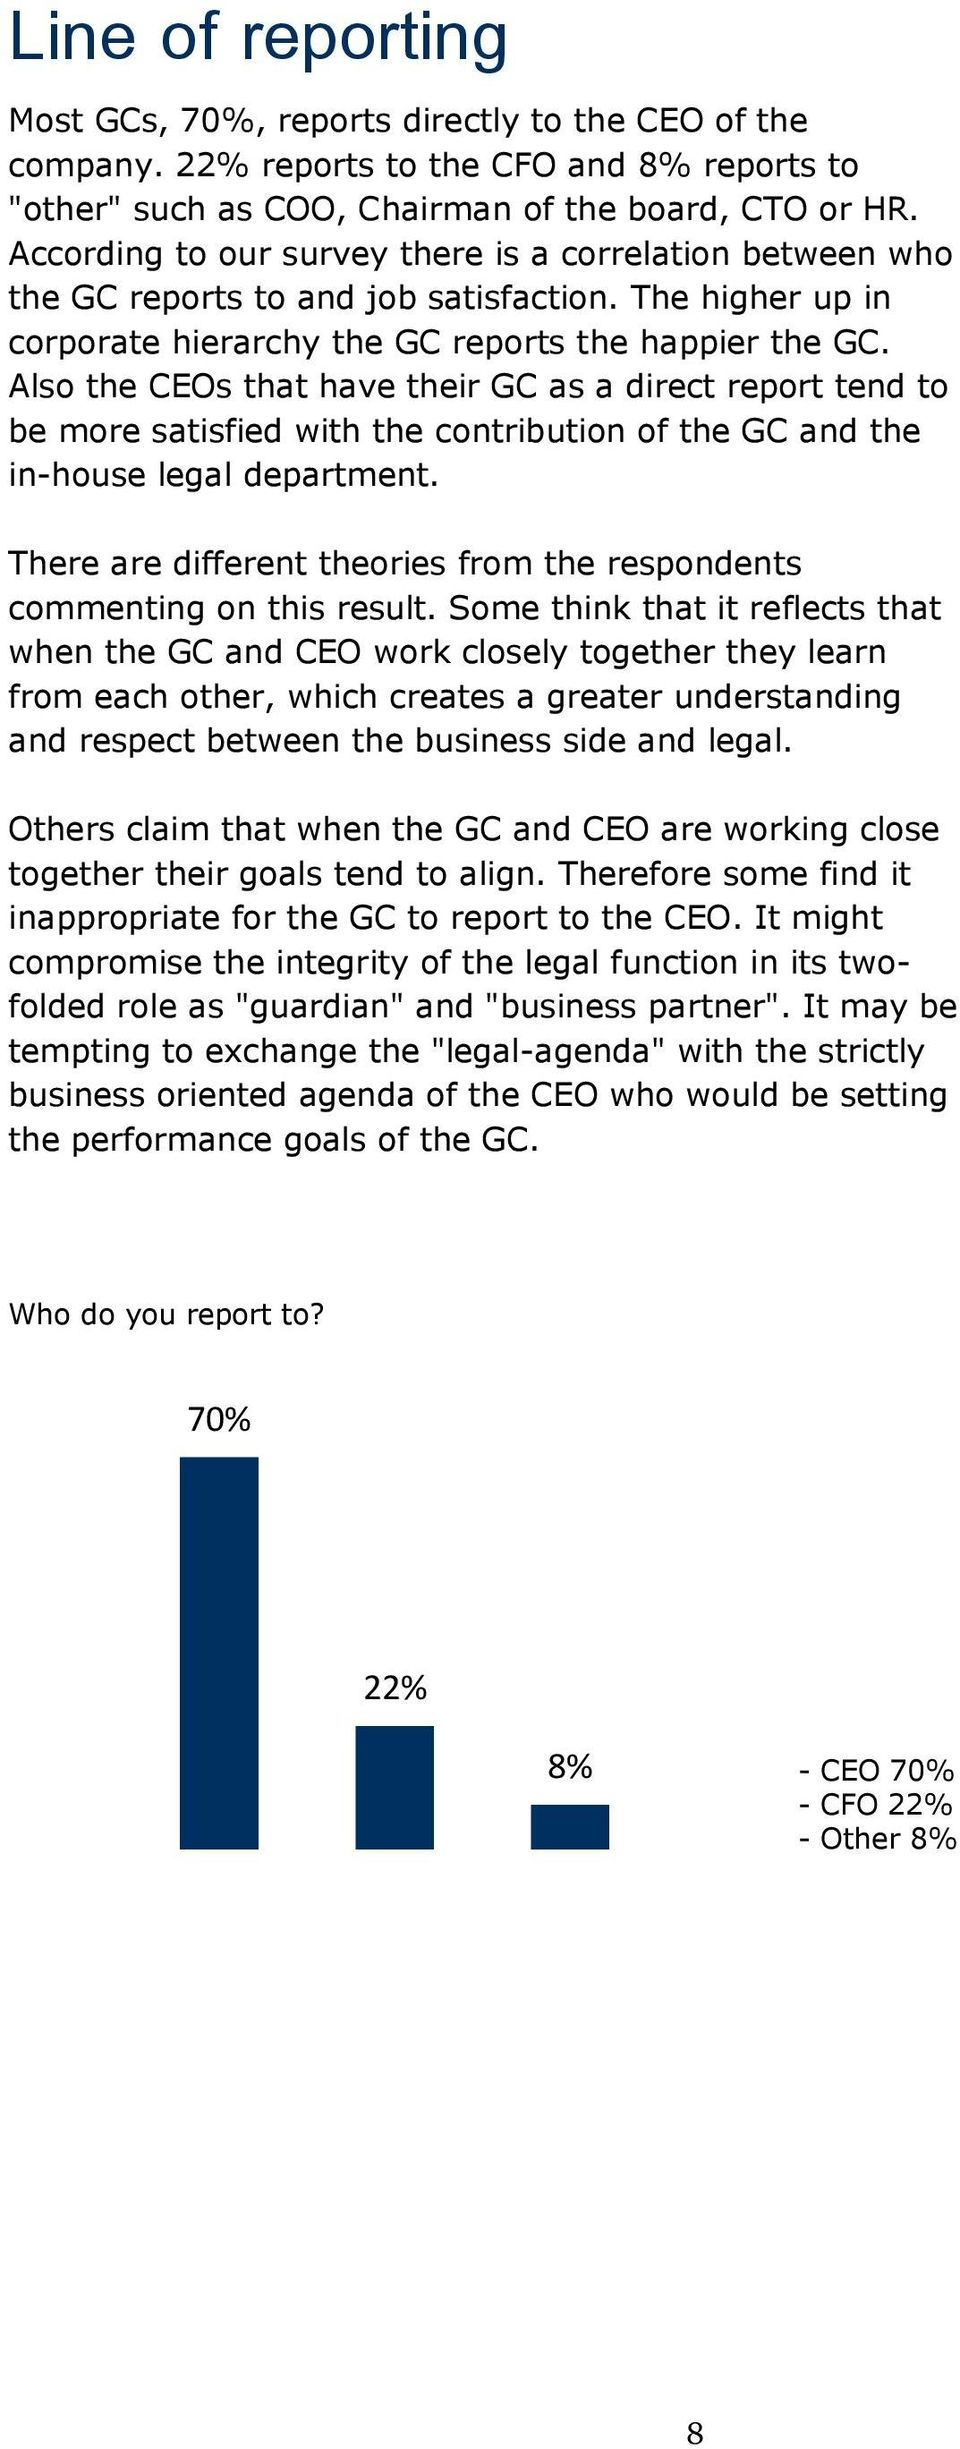 Also the CEOs that have their GC as a direct report tend to be more satisfied with the contribution of the GC and the in-house legal department.